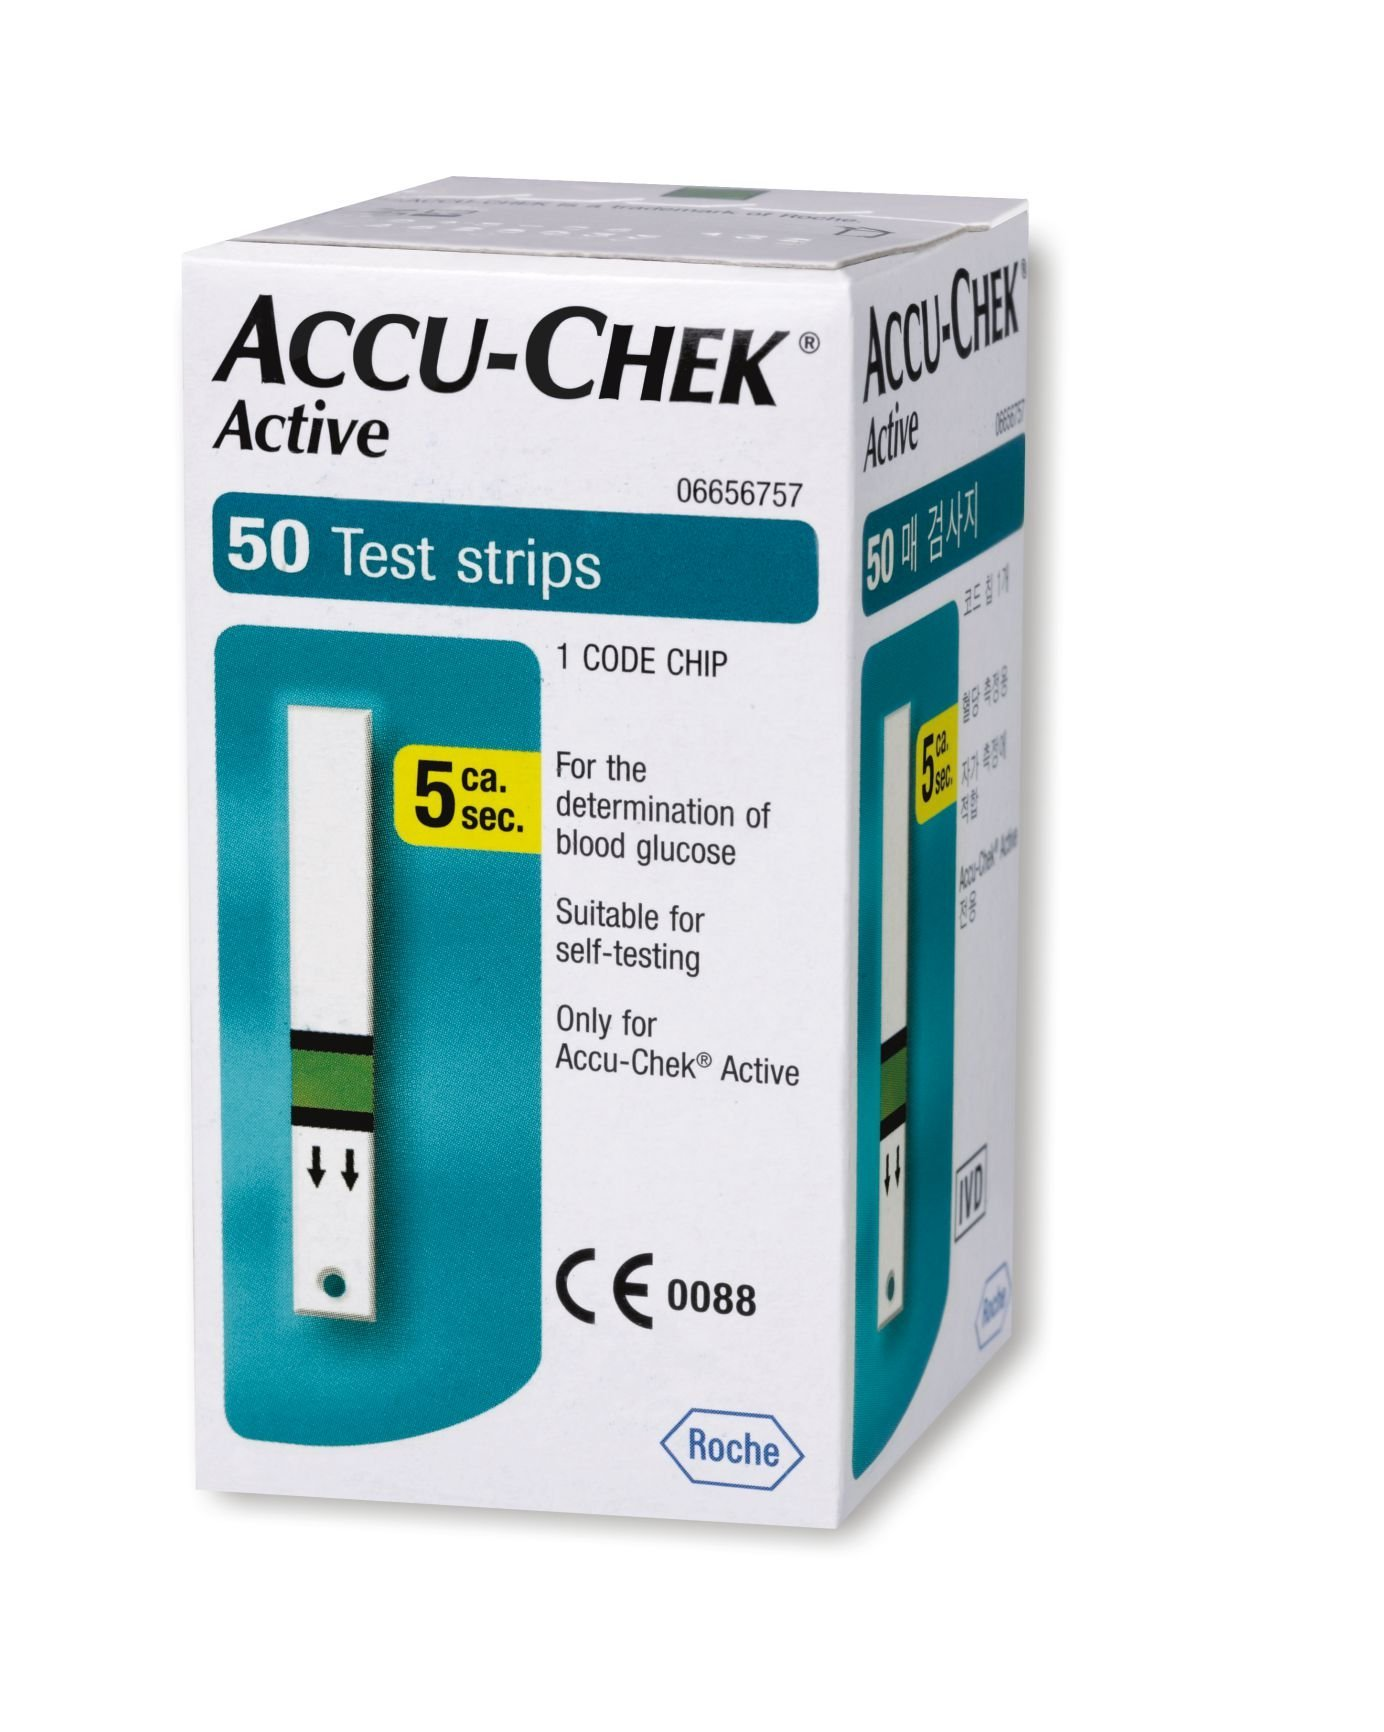 Accu-Chek Active Strips, Pack of 50 (Multicolor) product image